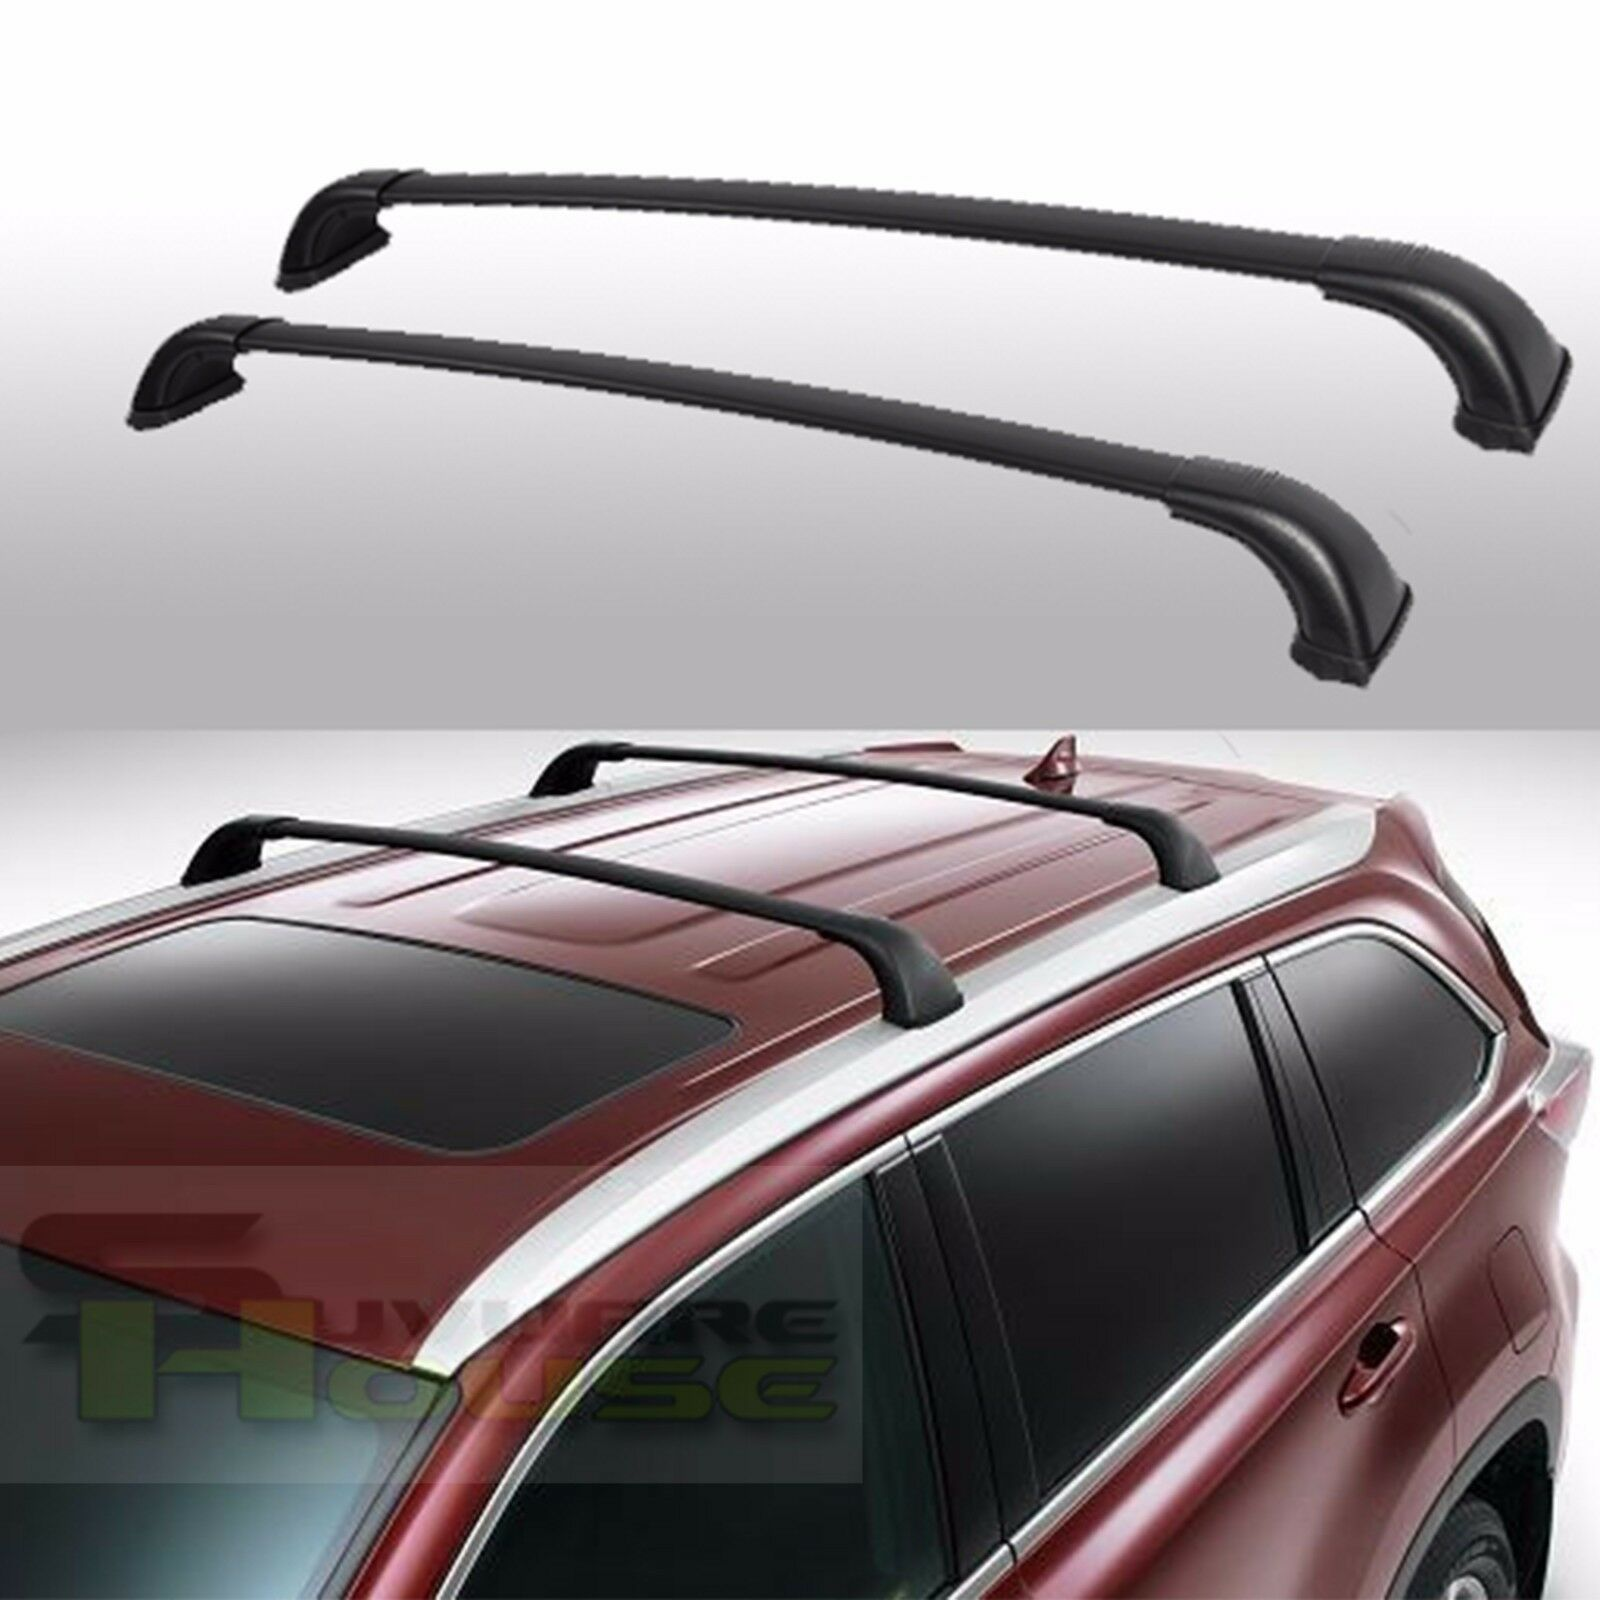 Details About For 14 18 Toyota Highlander Xle Limited Aluminum Black Roof Rack Cross Bar